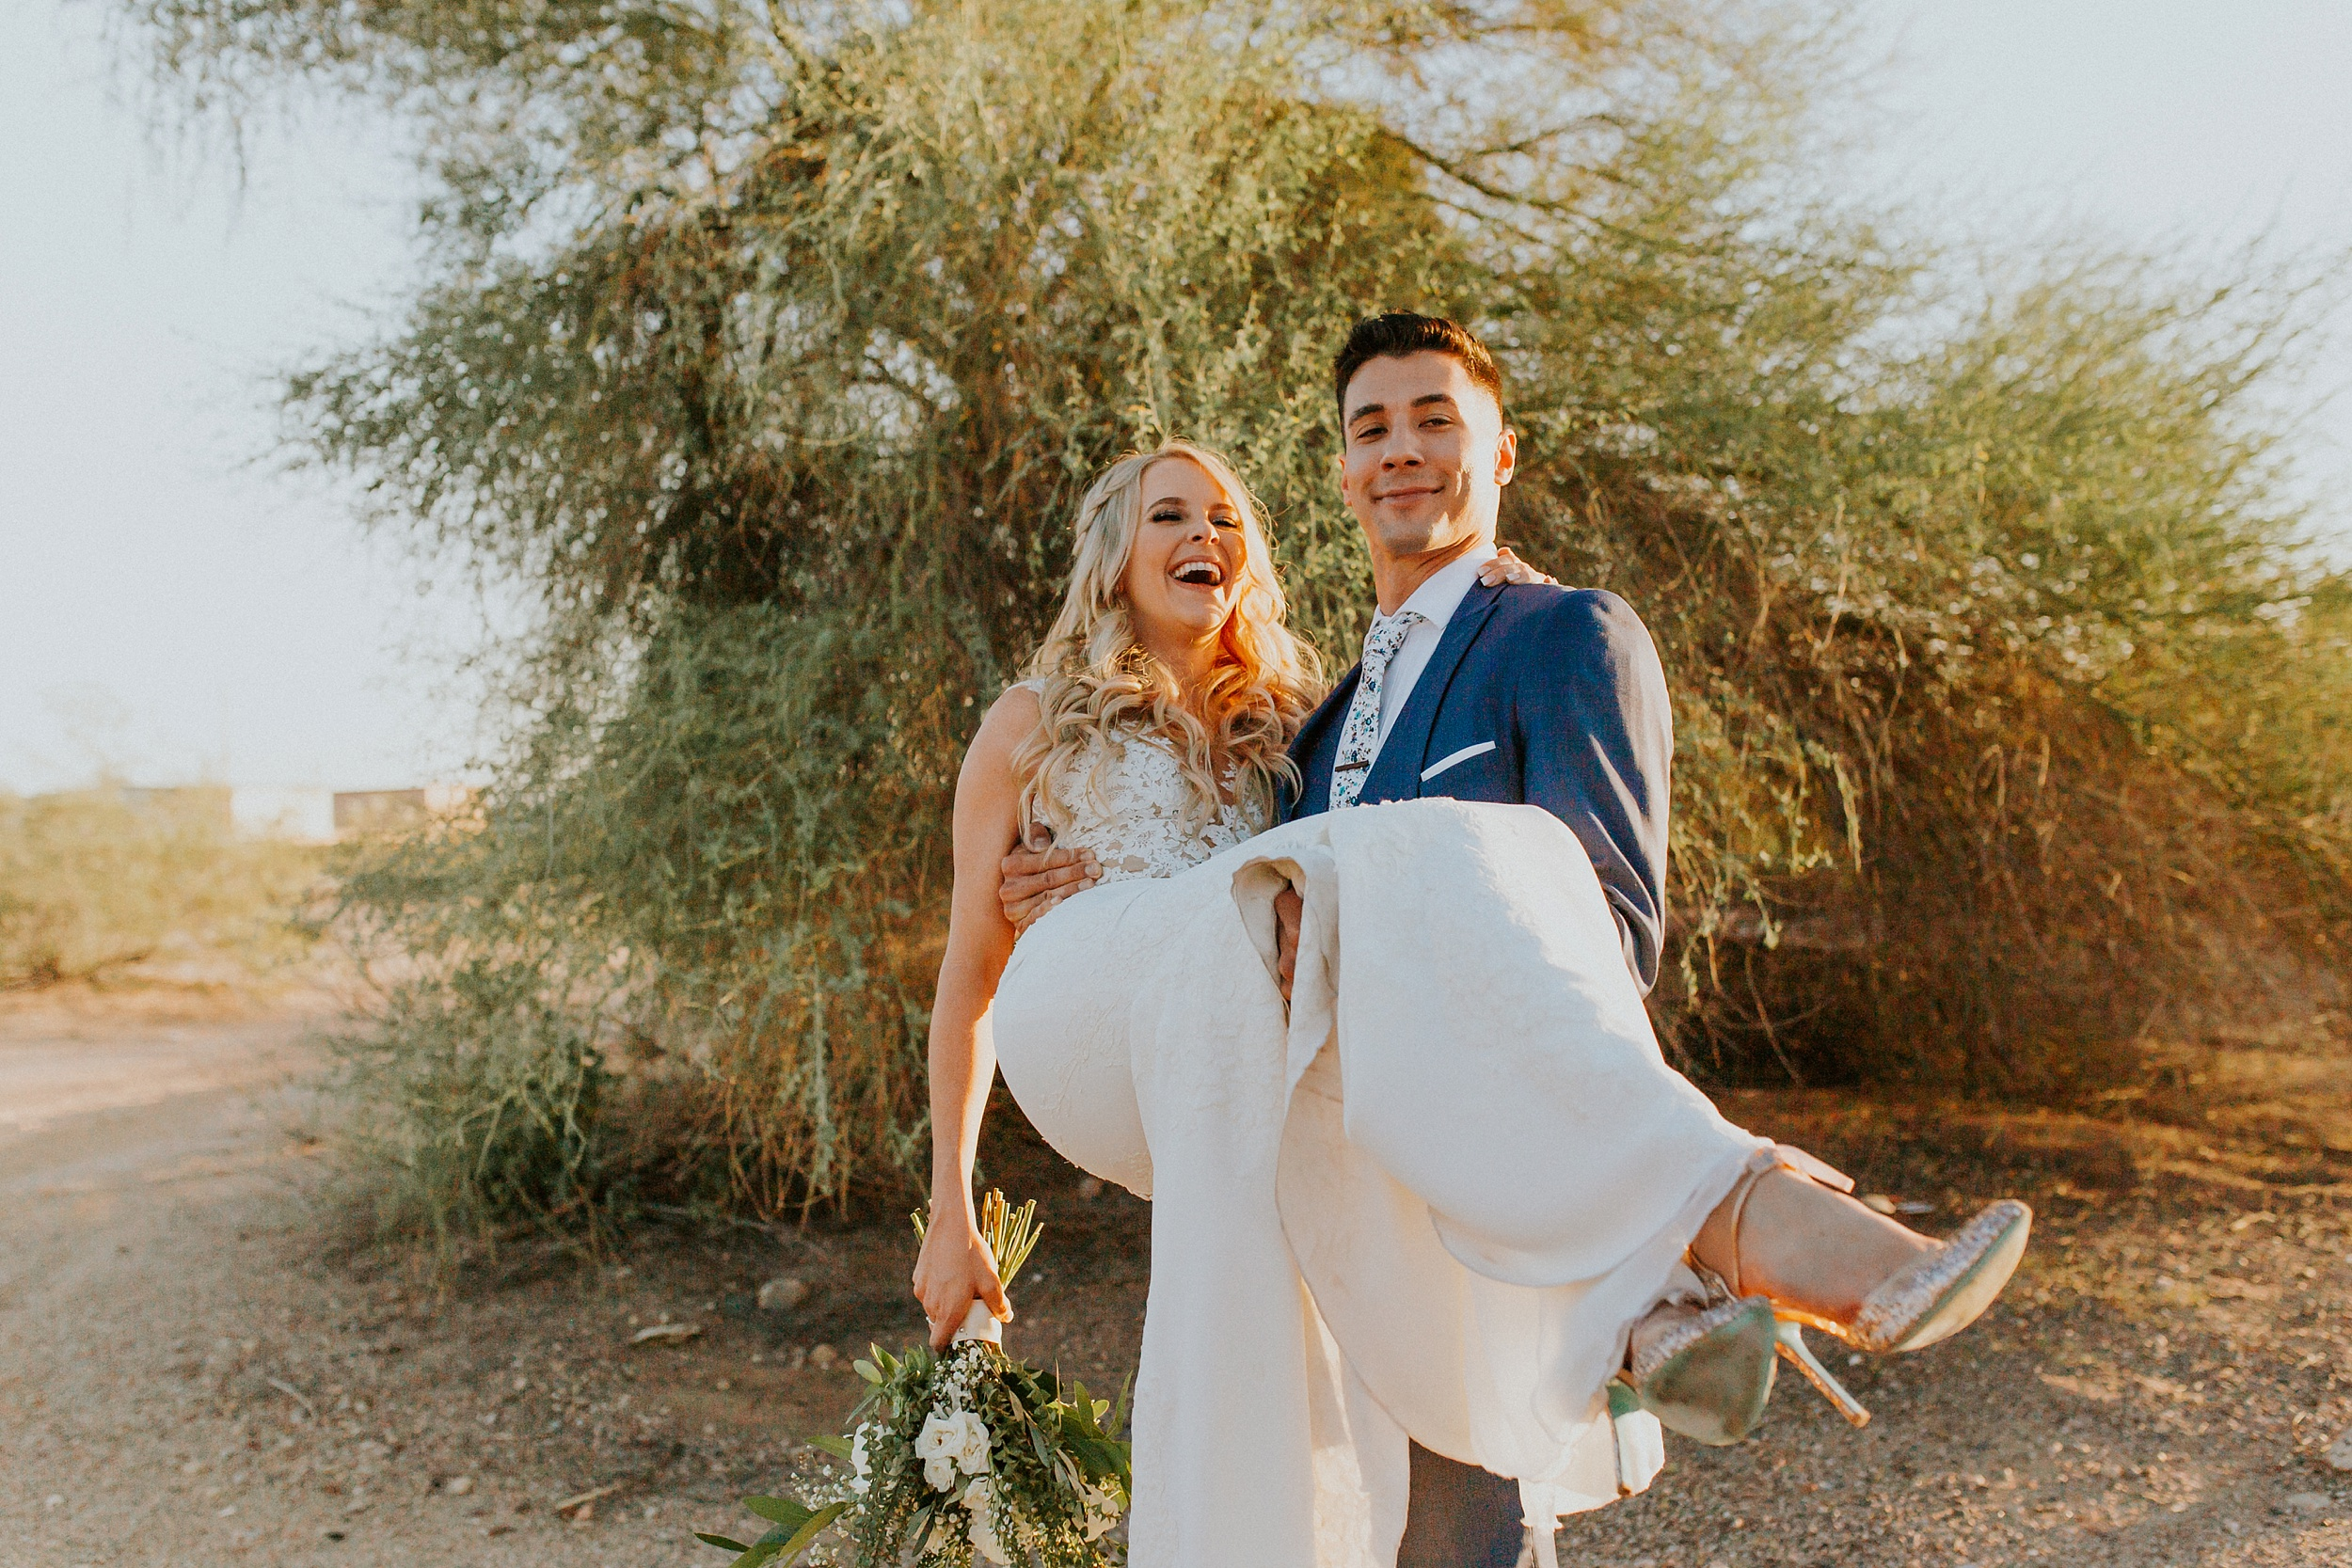 Meg+Bubba_Wedding_Bride+Groom_Portraits_Arizona-71.jpg